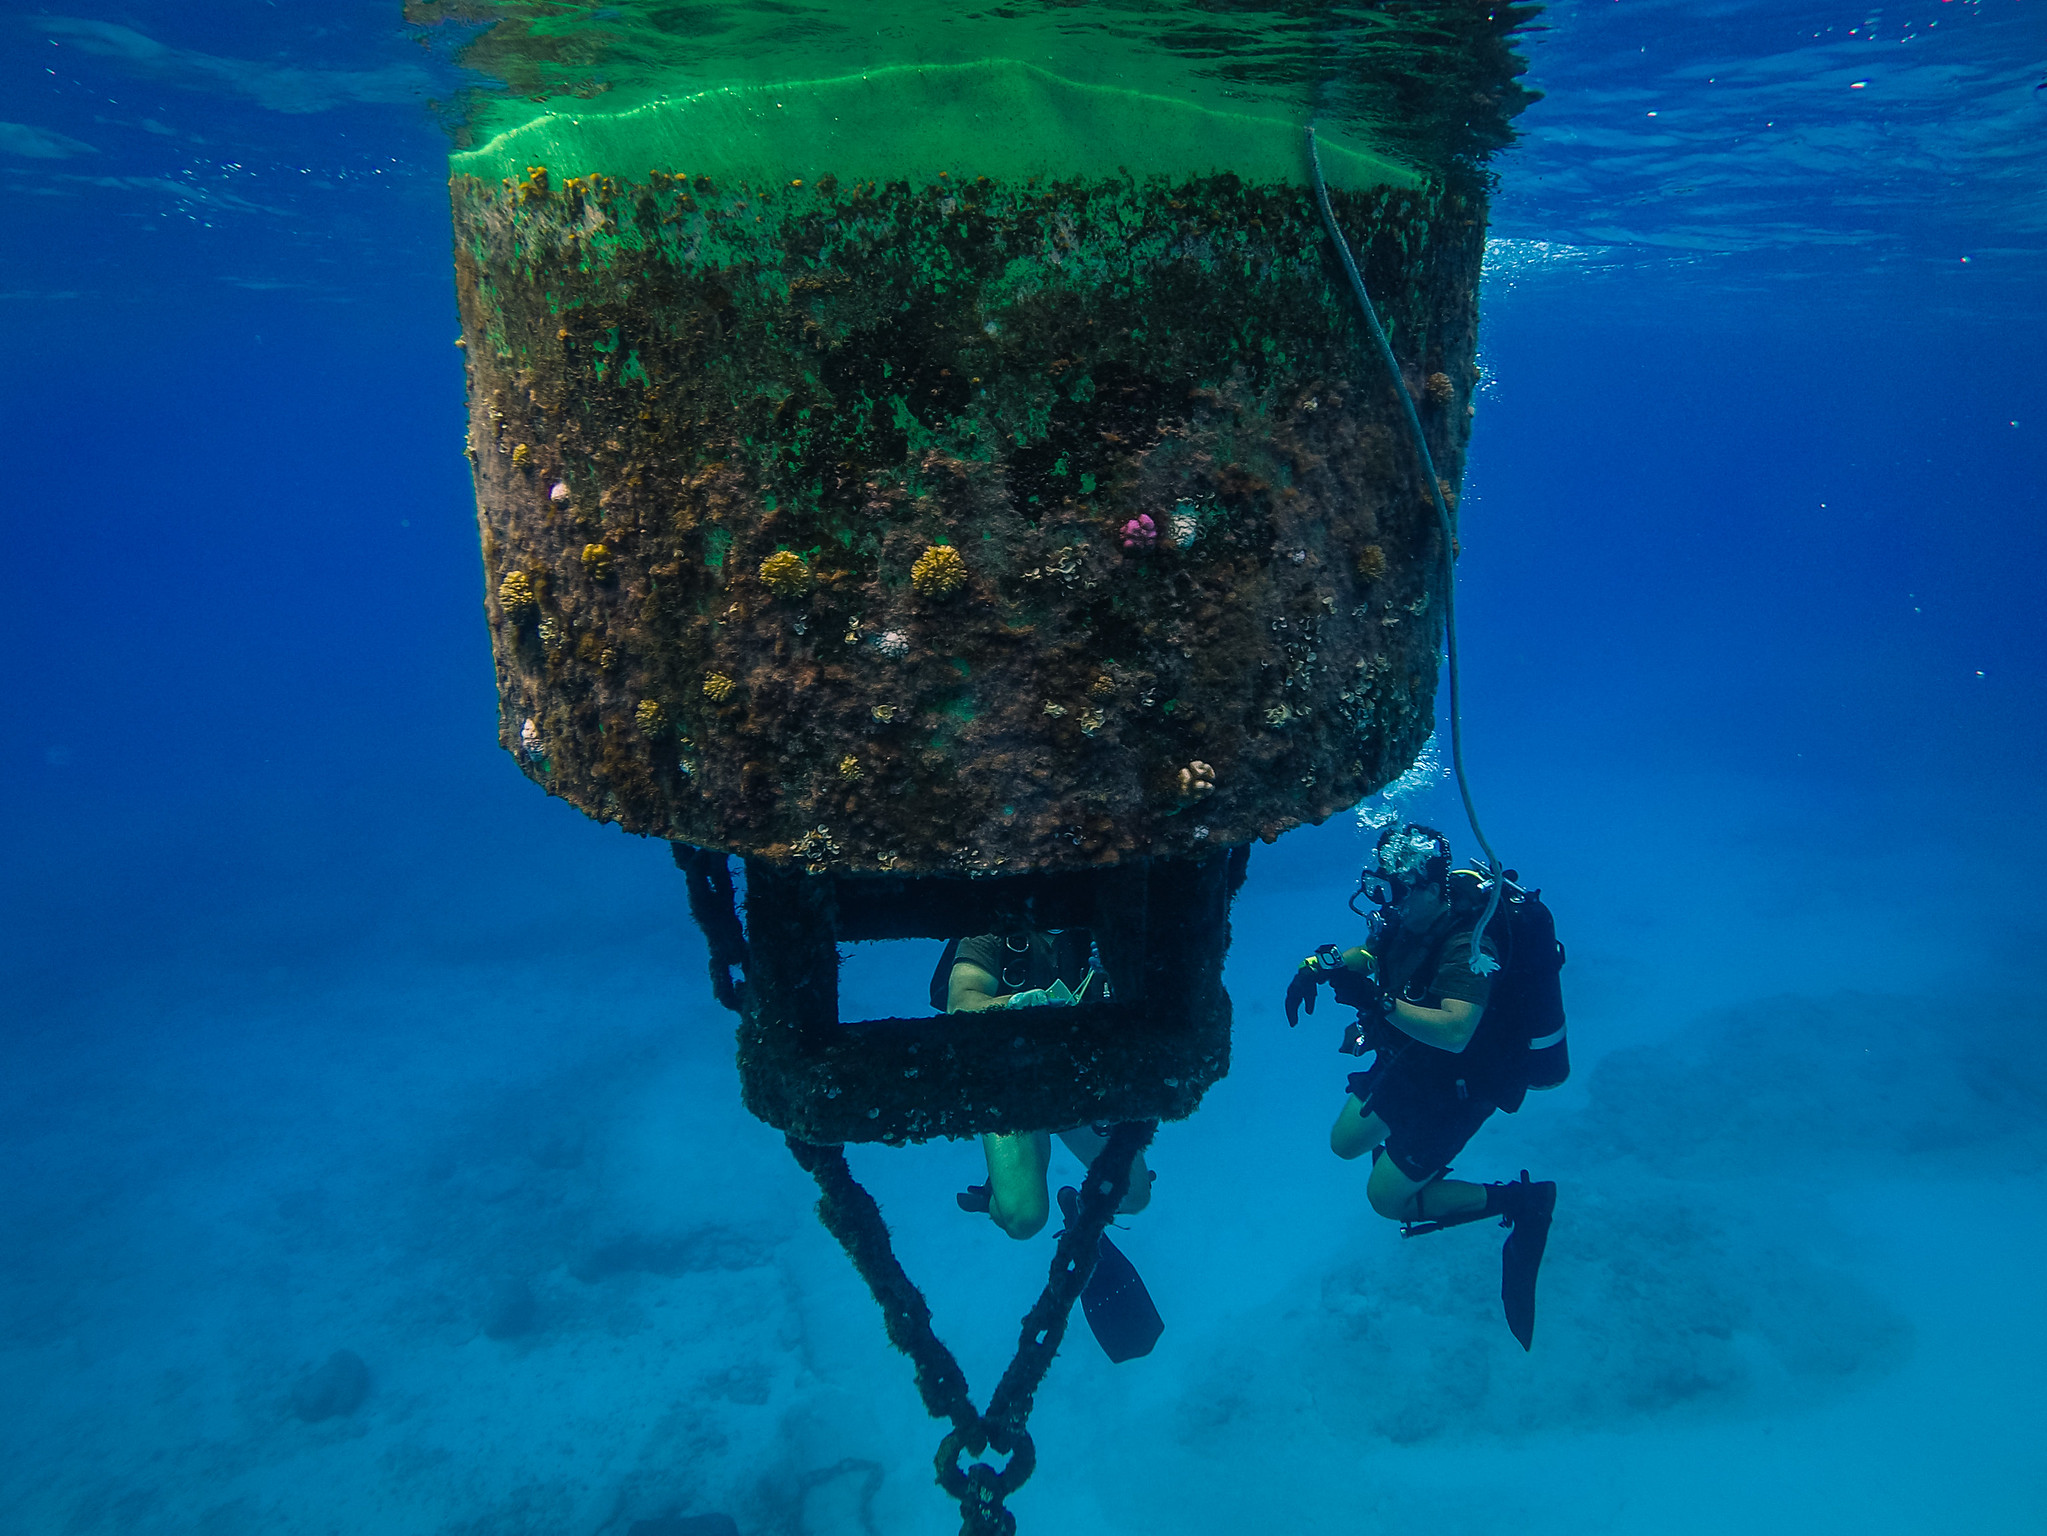 Steel Worker 3rd Class Andrew Cuellar, assigned to Underwater Construction Team (UCT) 2, Construction Dive Detachment Alfa, inspects a buoy within the Tinian Harbor on Oct. 1, 2020. (MC2 Cole C. Pielop/Navy)